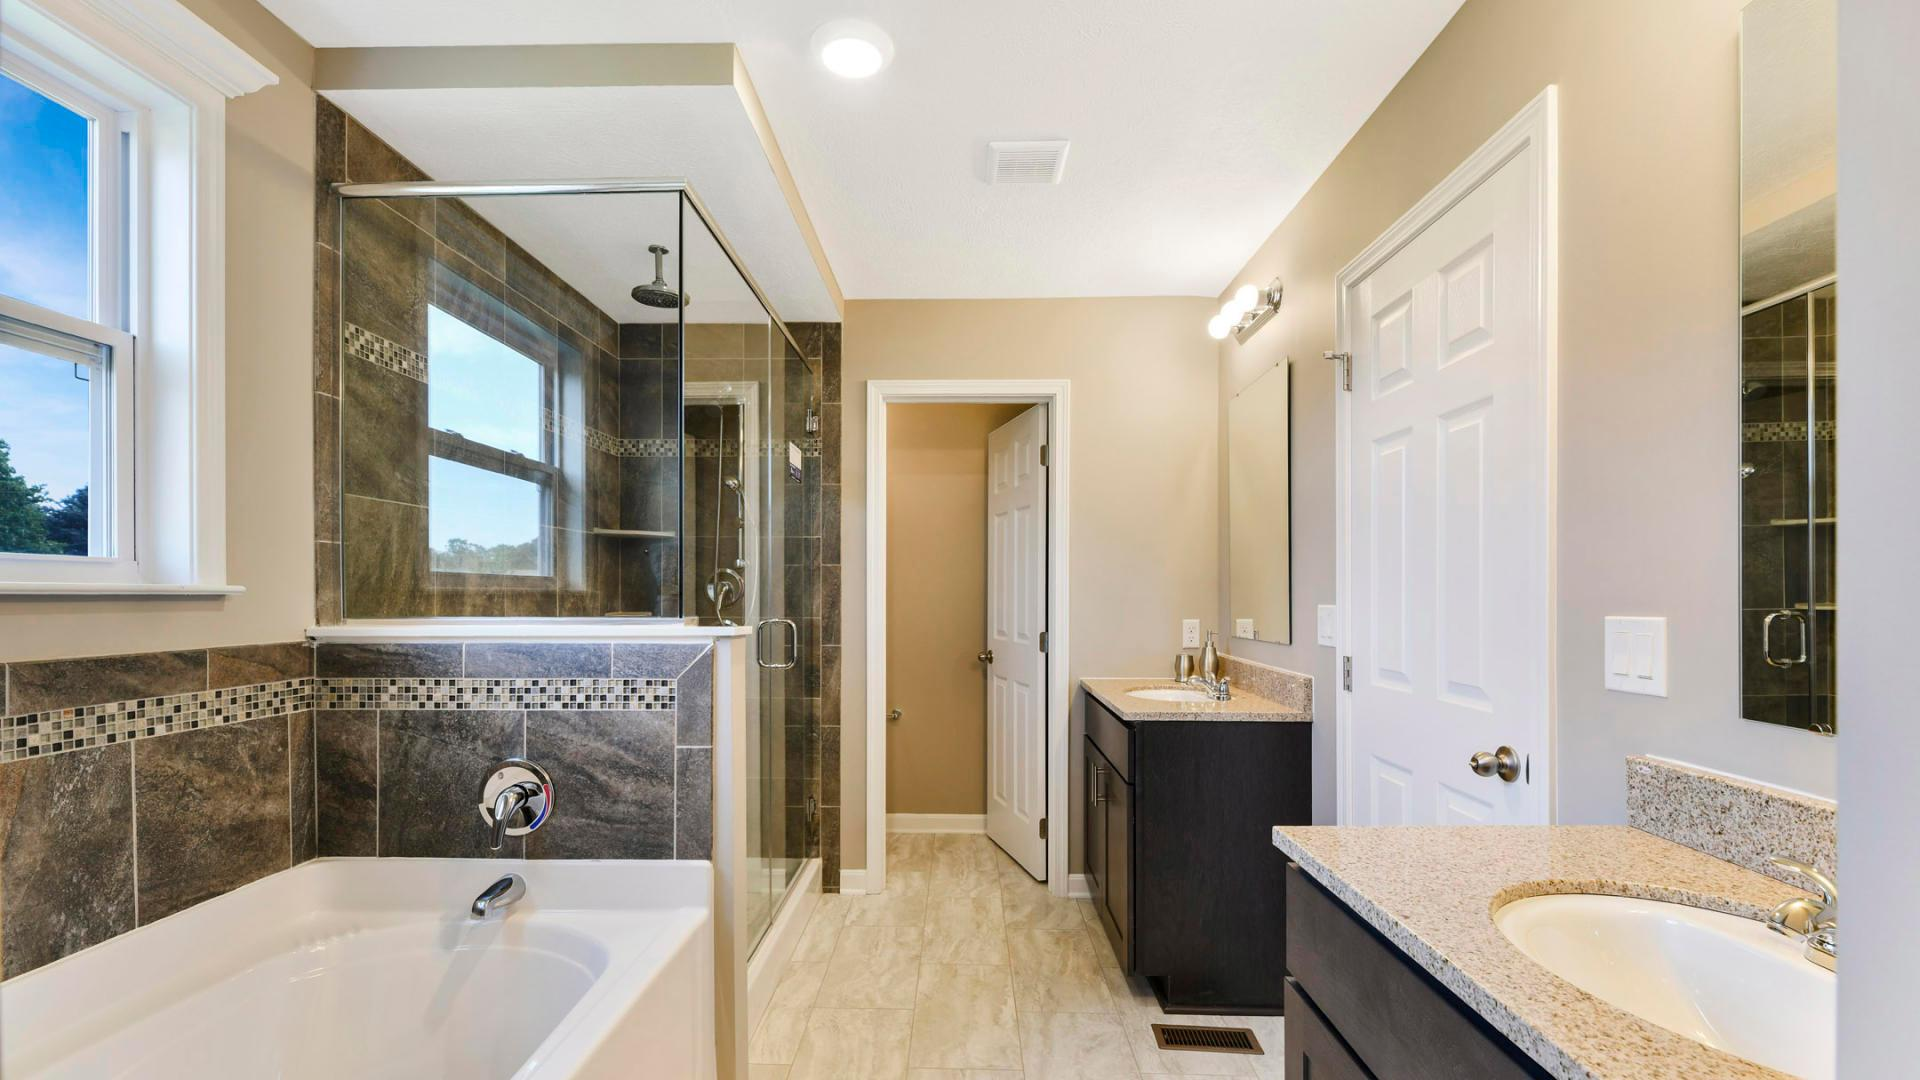 Bathroom featured in the Cheshire By Maronda Homes in Pittsburgh, PA